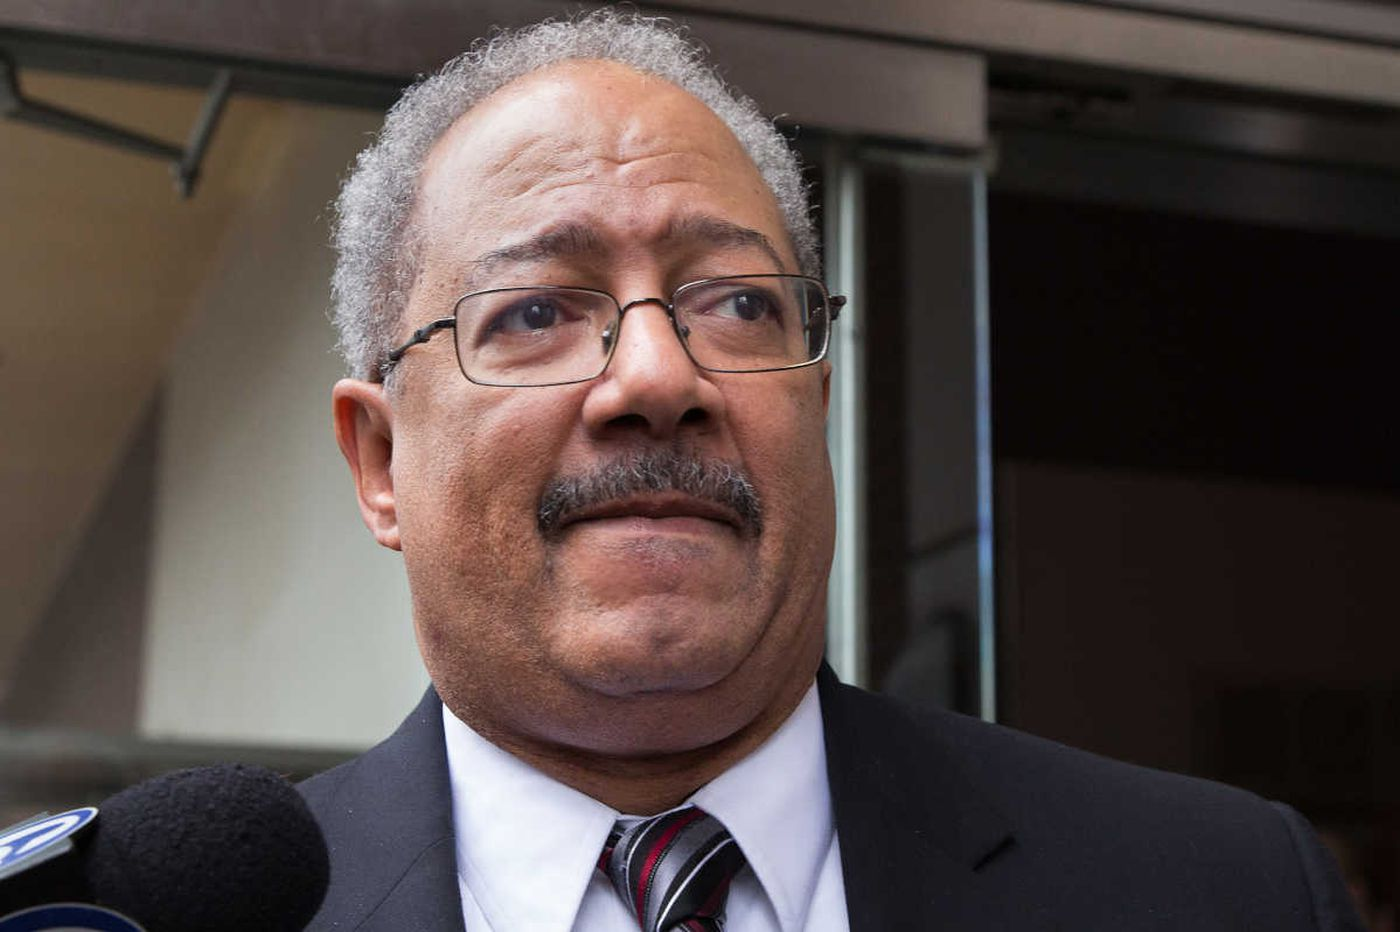 Fattah surrenders to begin serving 10-year prison term